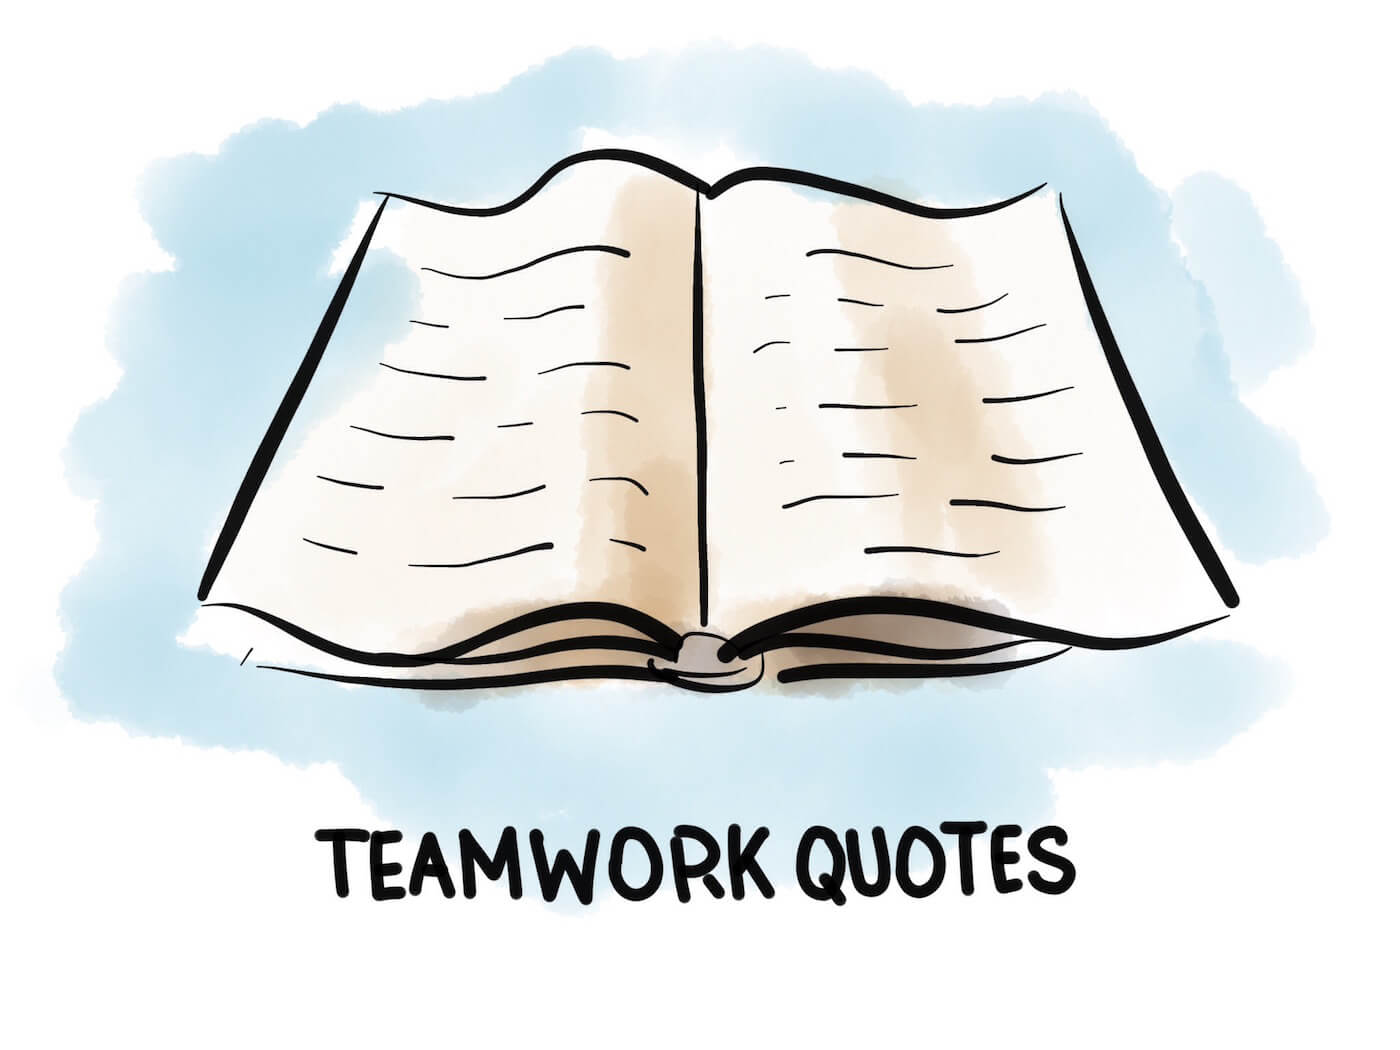 Teamwork Quotes That Make Your Team Really Work Together